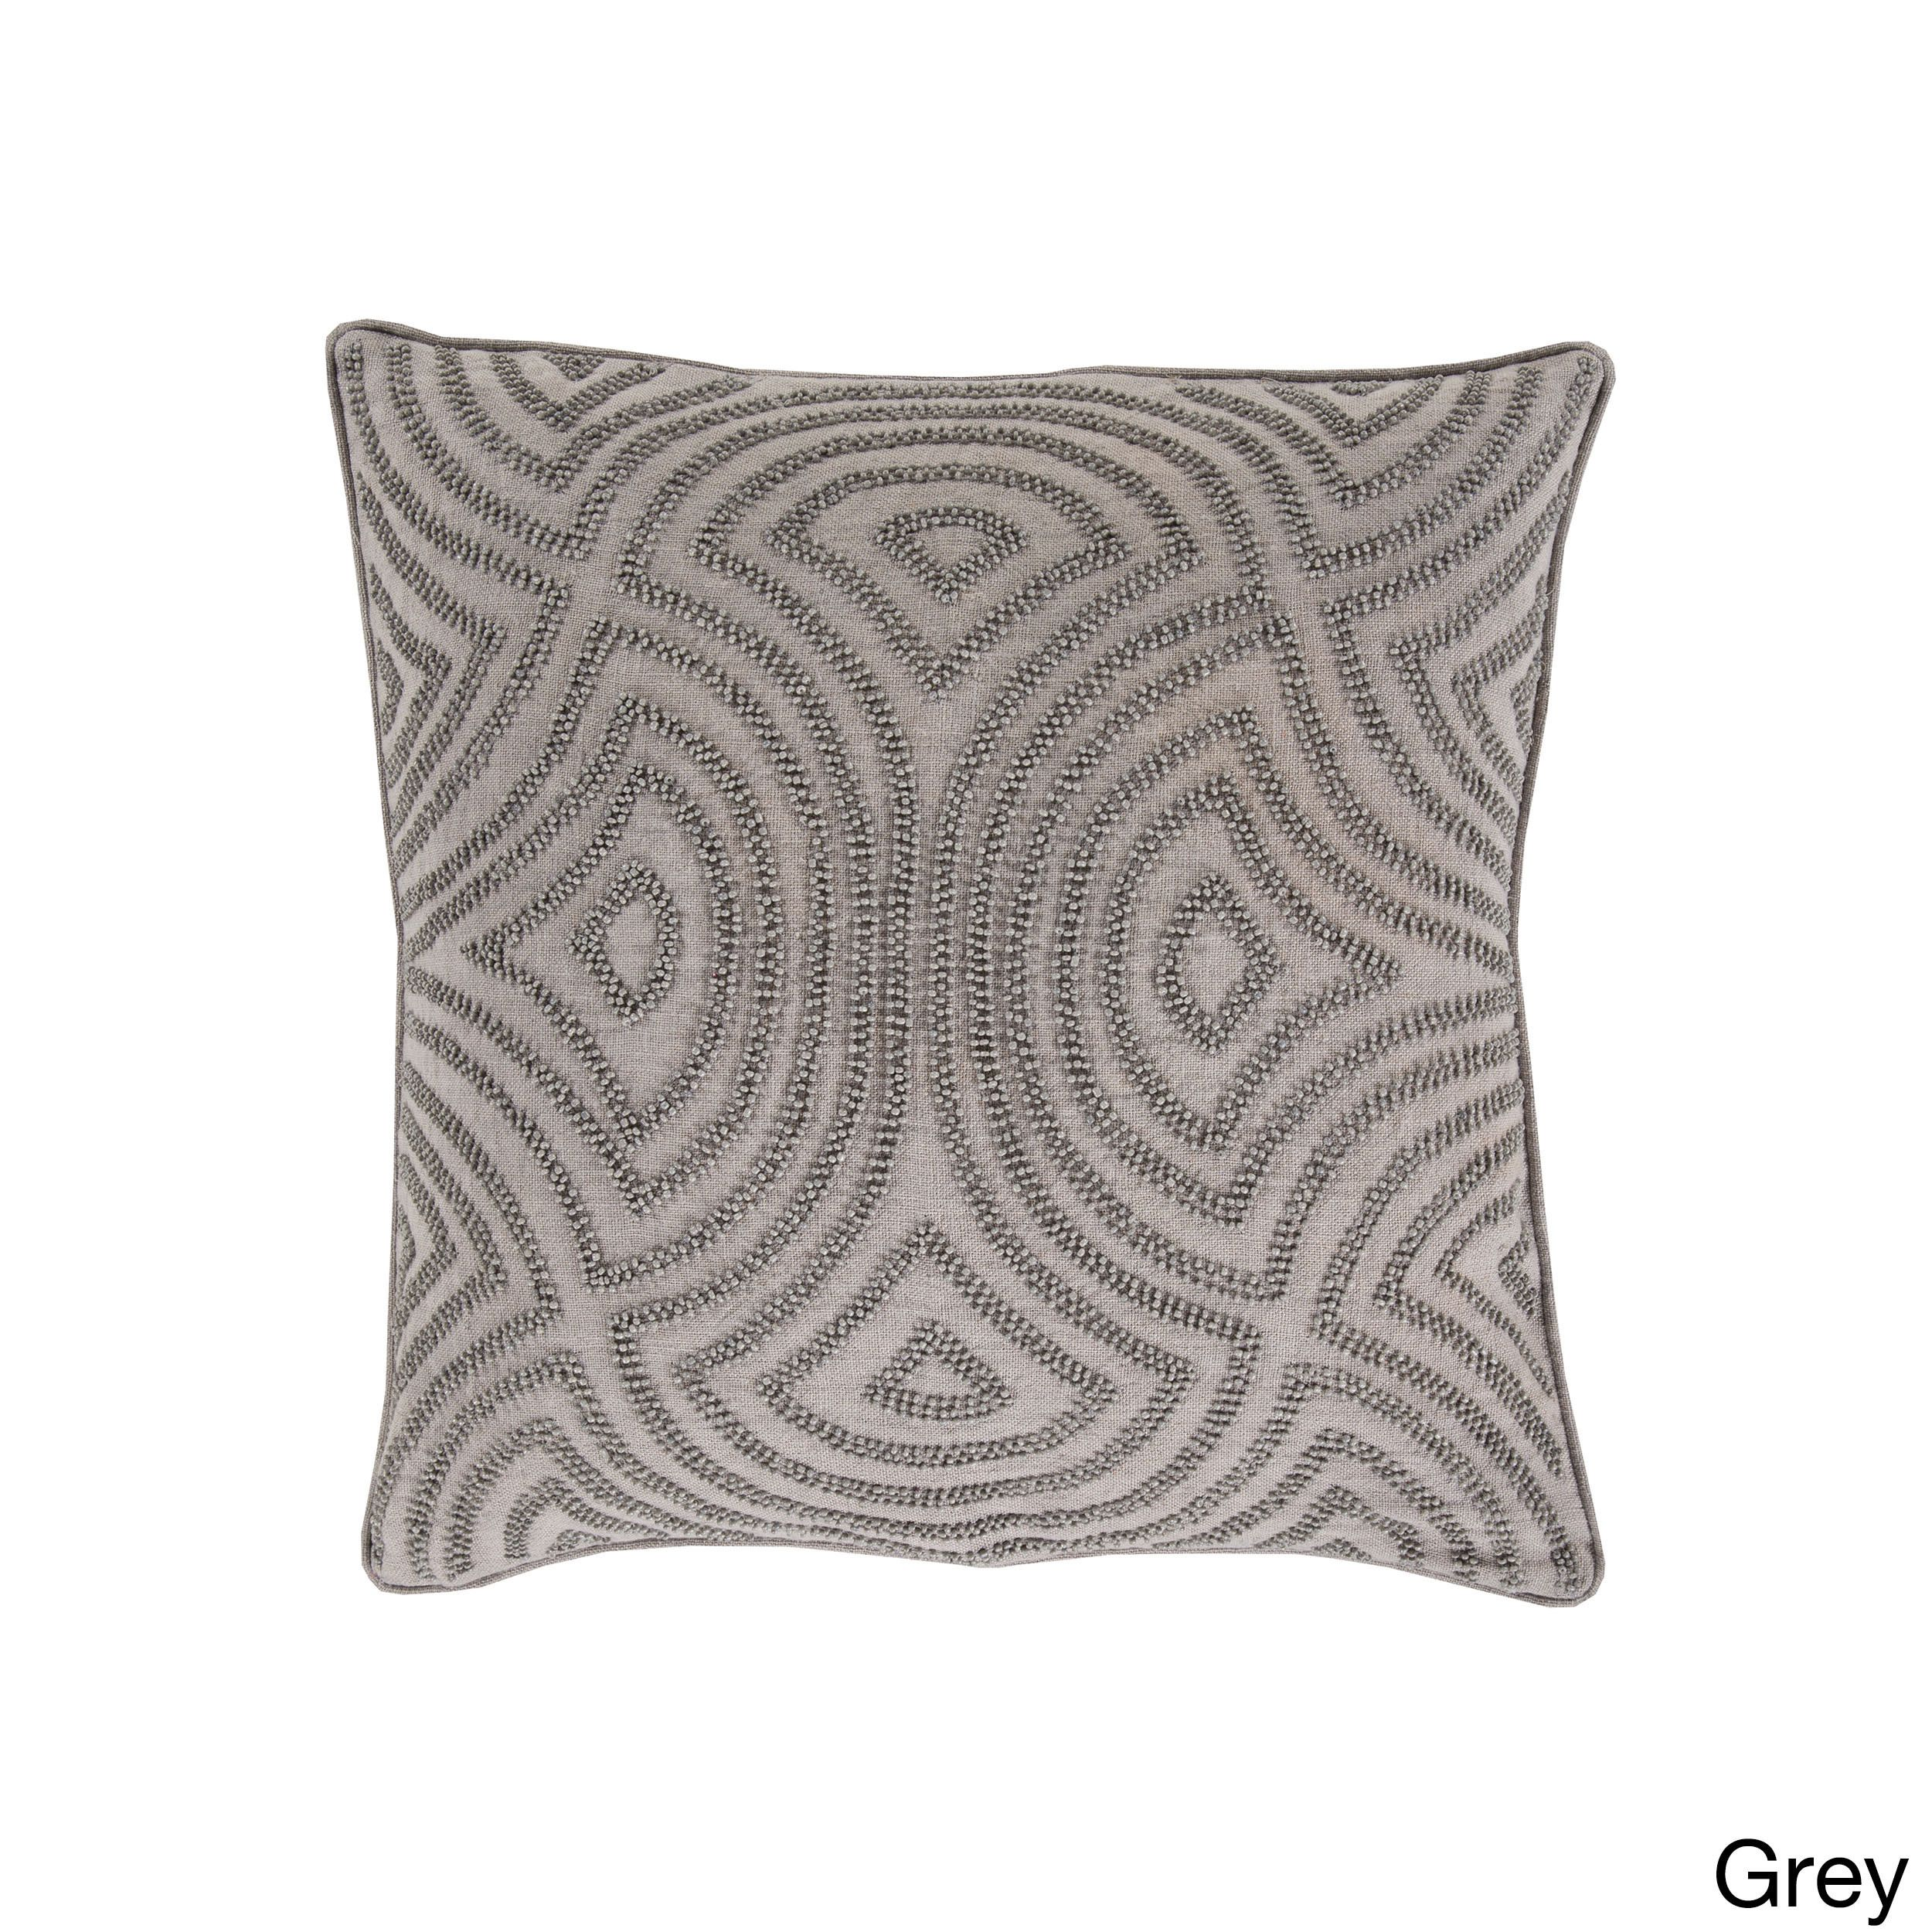 Decorative Adriel Geometric 18-inch Pillow (Down - Taupe), Grey, Size 18 x 18 (Organic, Embroidered)